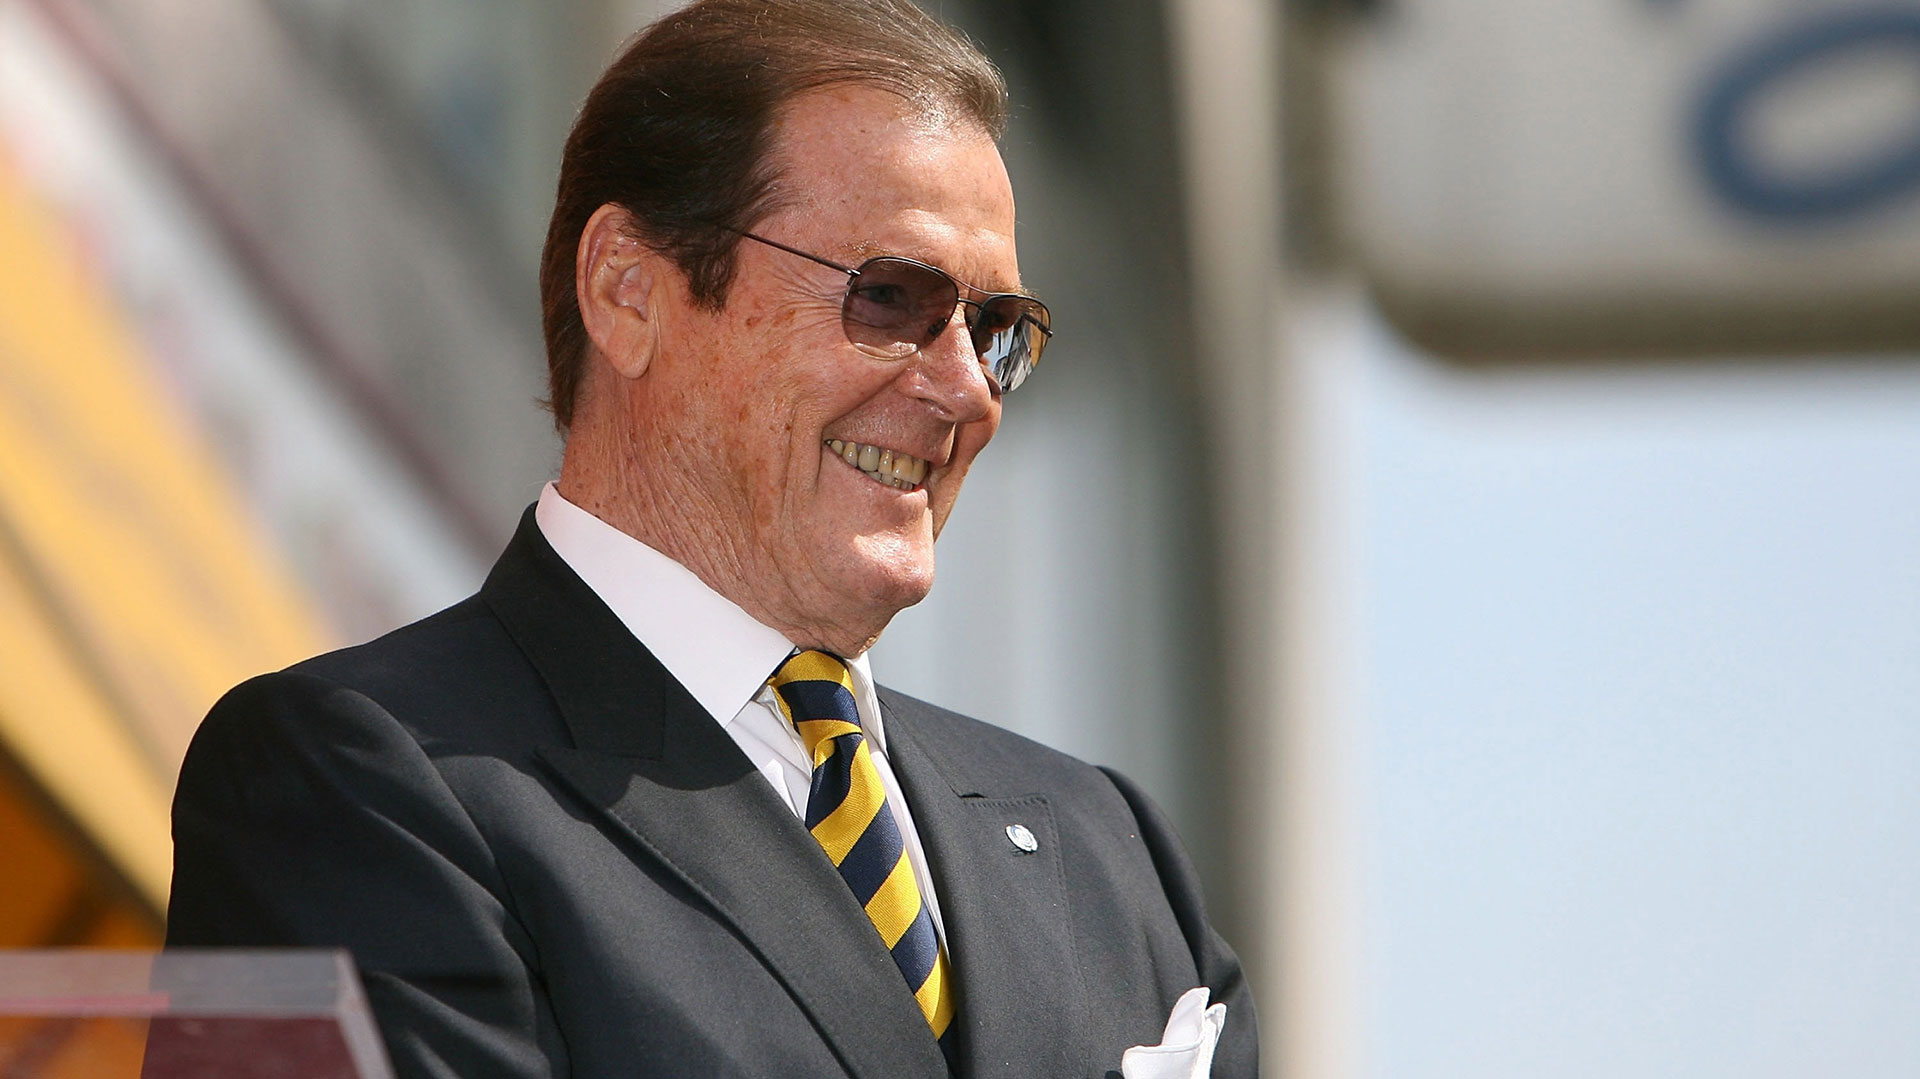 Roger Moore es homenajeado con una estrella en el Paseo de la Fama de Hollywood en Los Angeles, en 2007 (Getty)